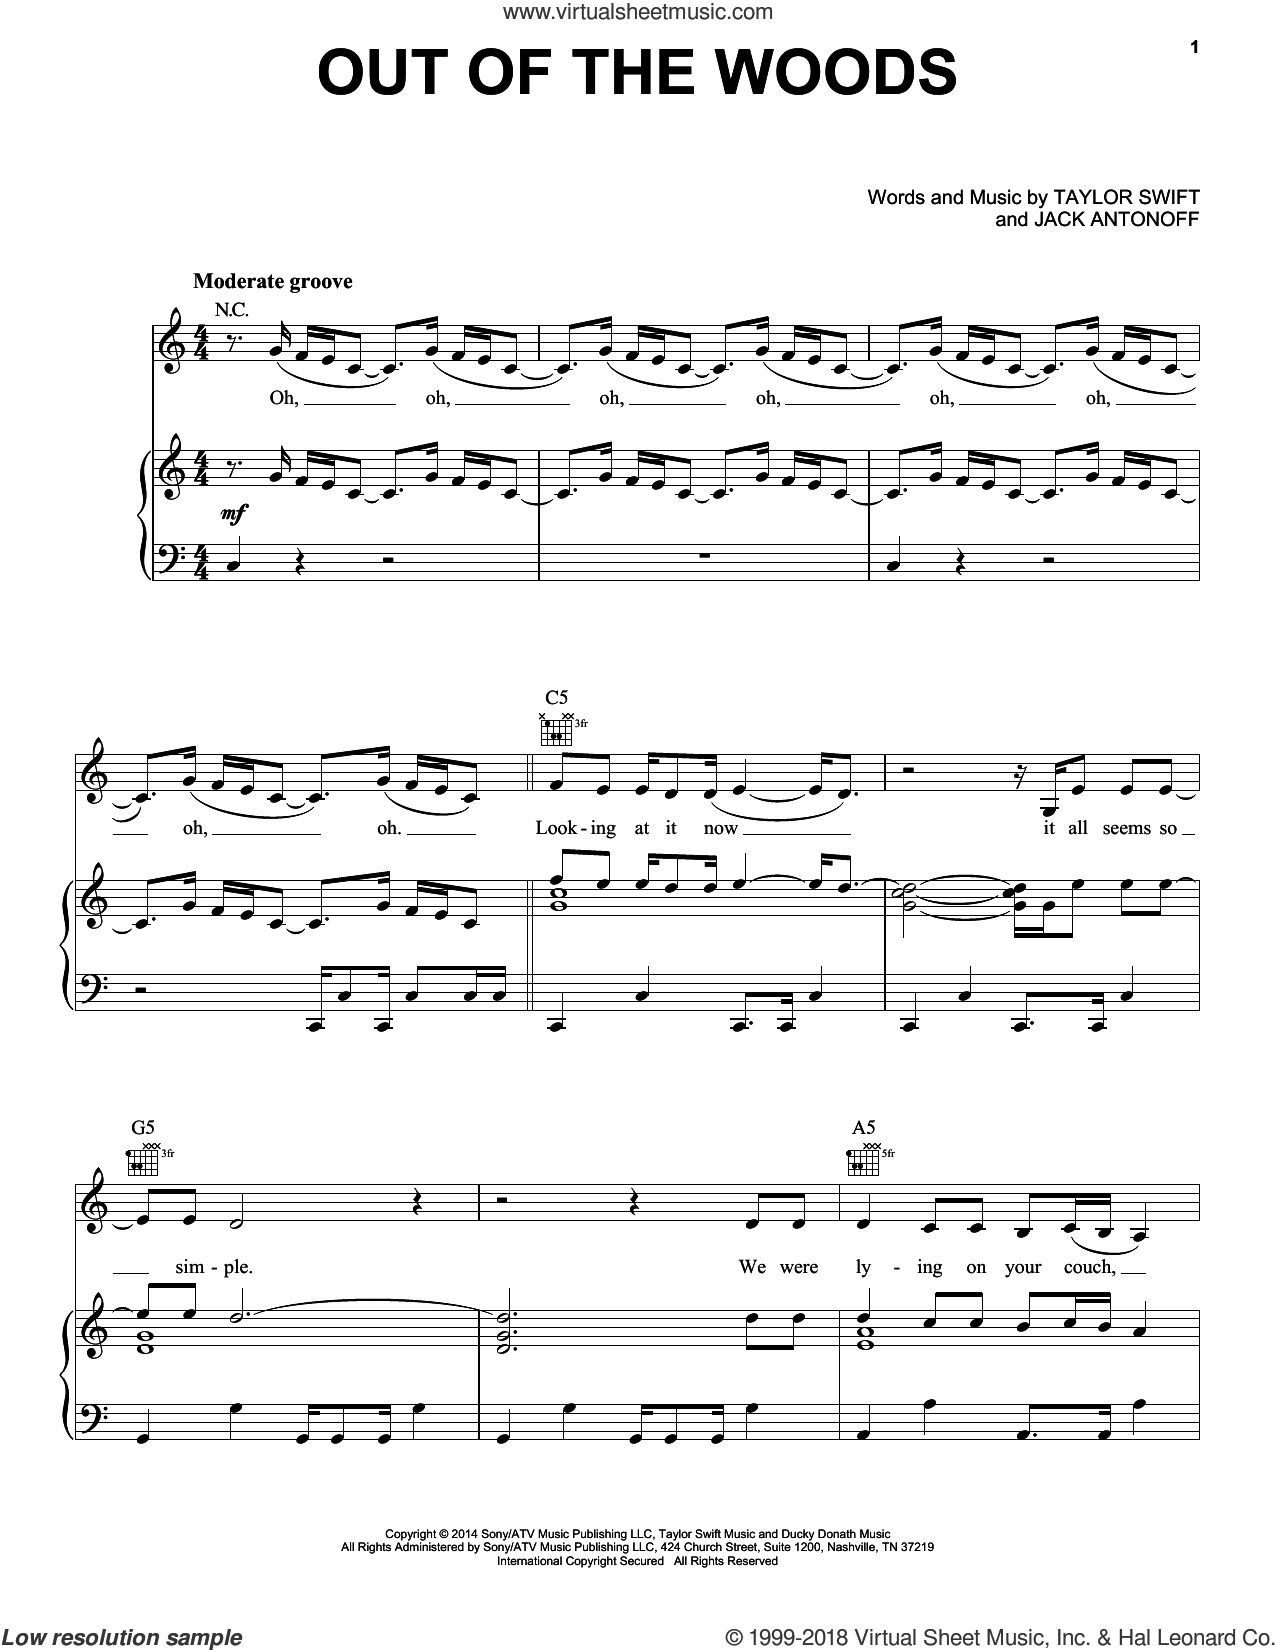 Out Of The Woods sheet music for voice, piano or guitar plus backing track by Taylor Swift and Jack Antonoff, intermediate. Score Image Preview.